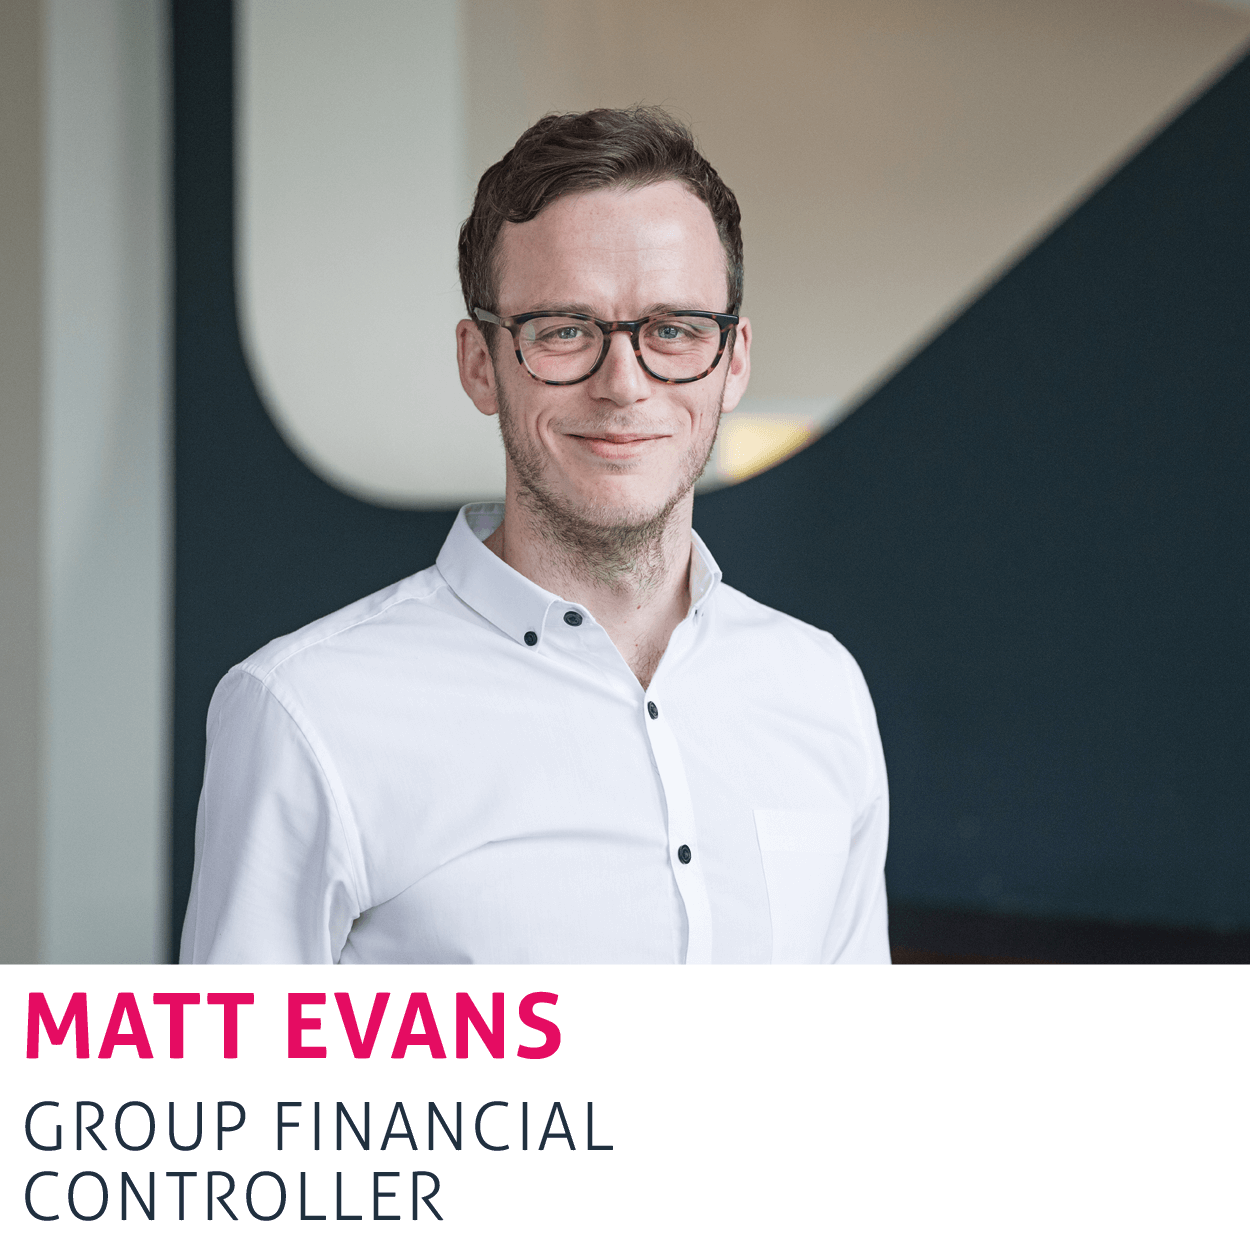 Matt Evans, Group Financial Controller